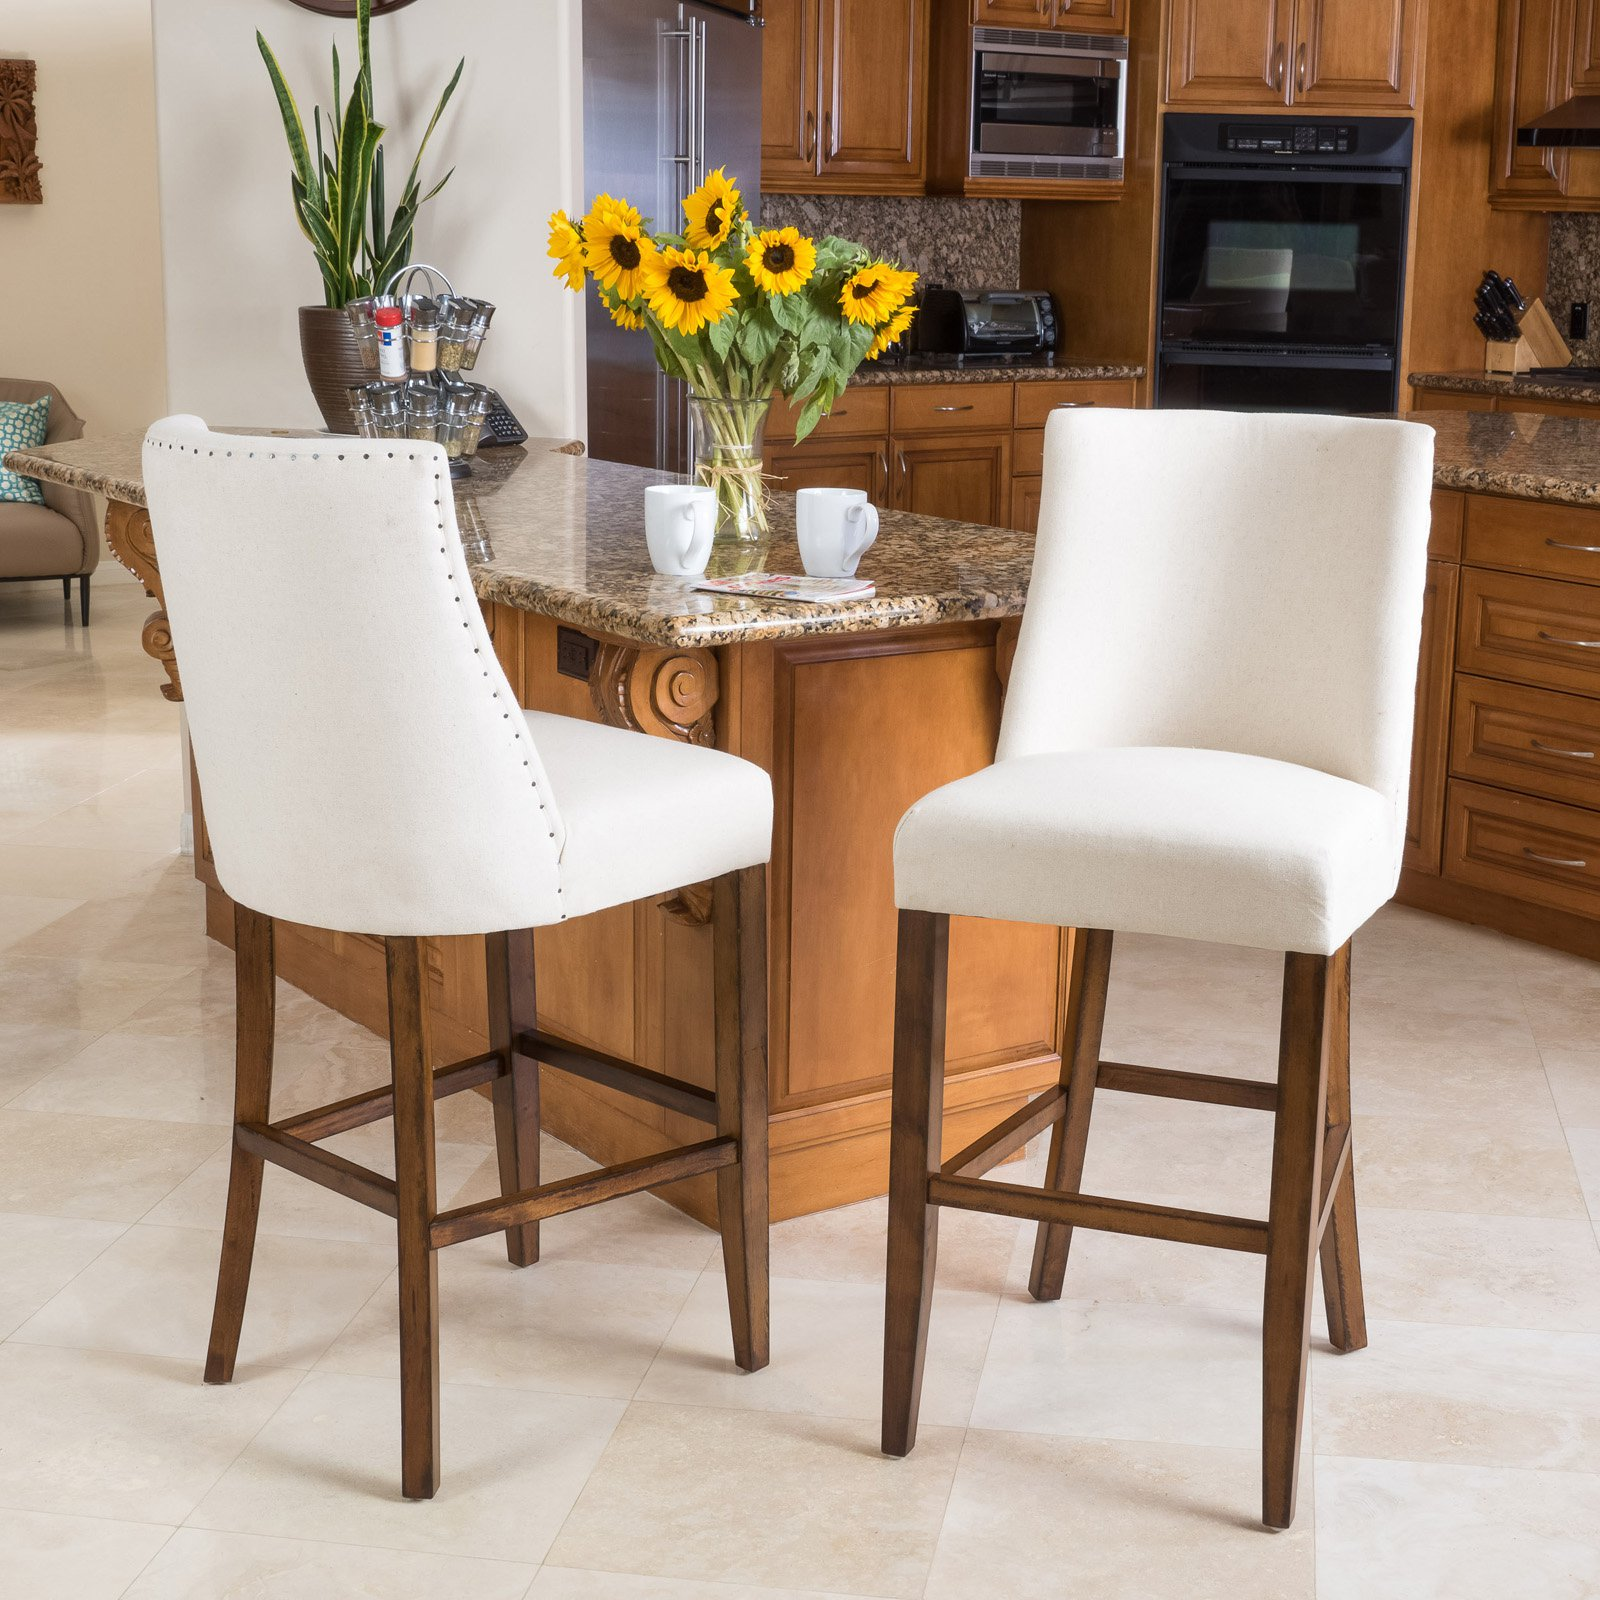 Cottonwood 31 in. Bar Stool with Cushion - Set of 2